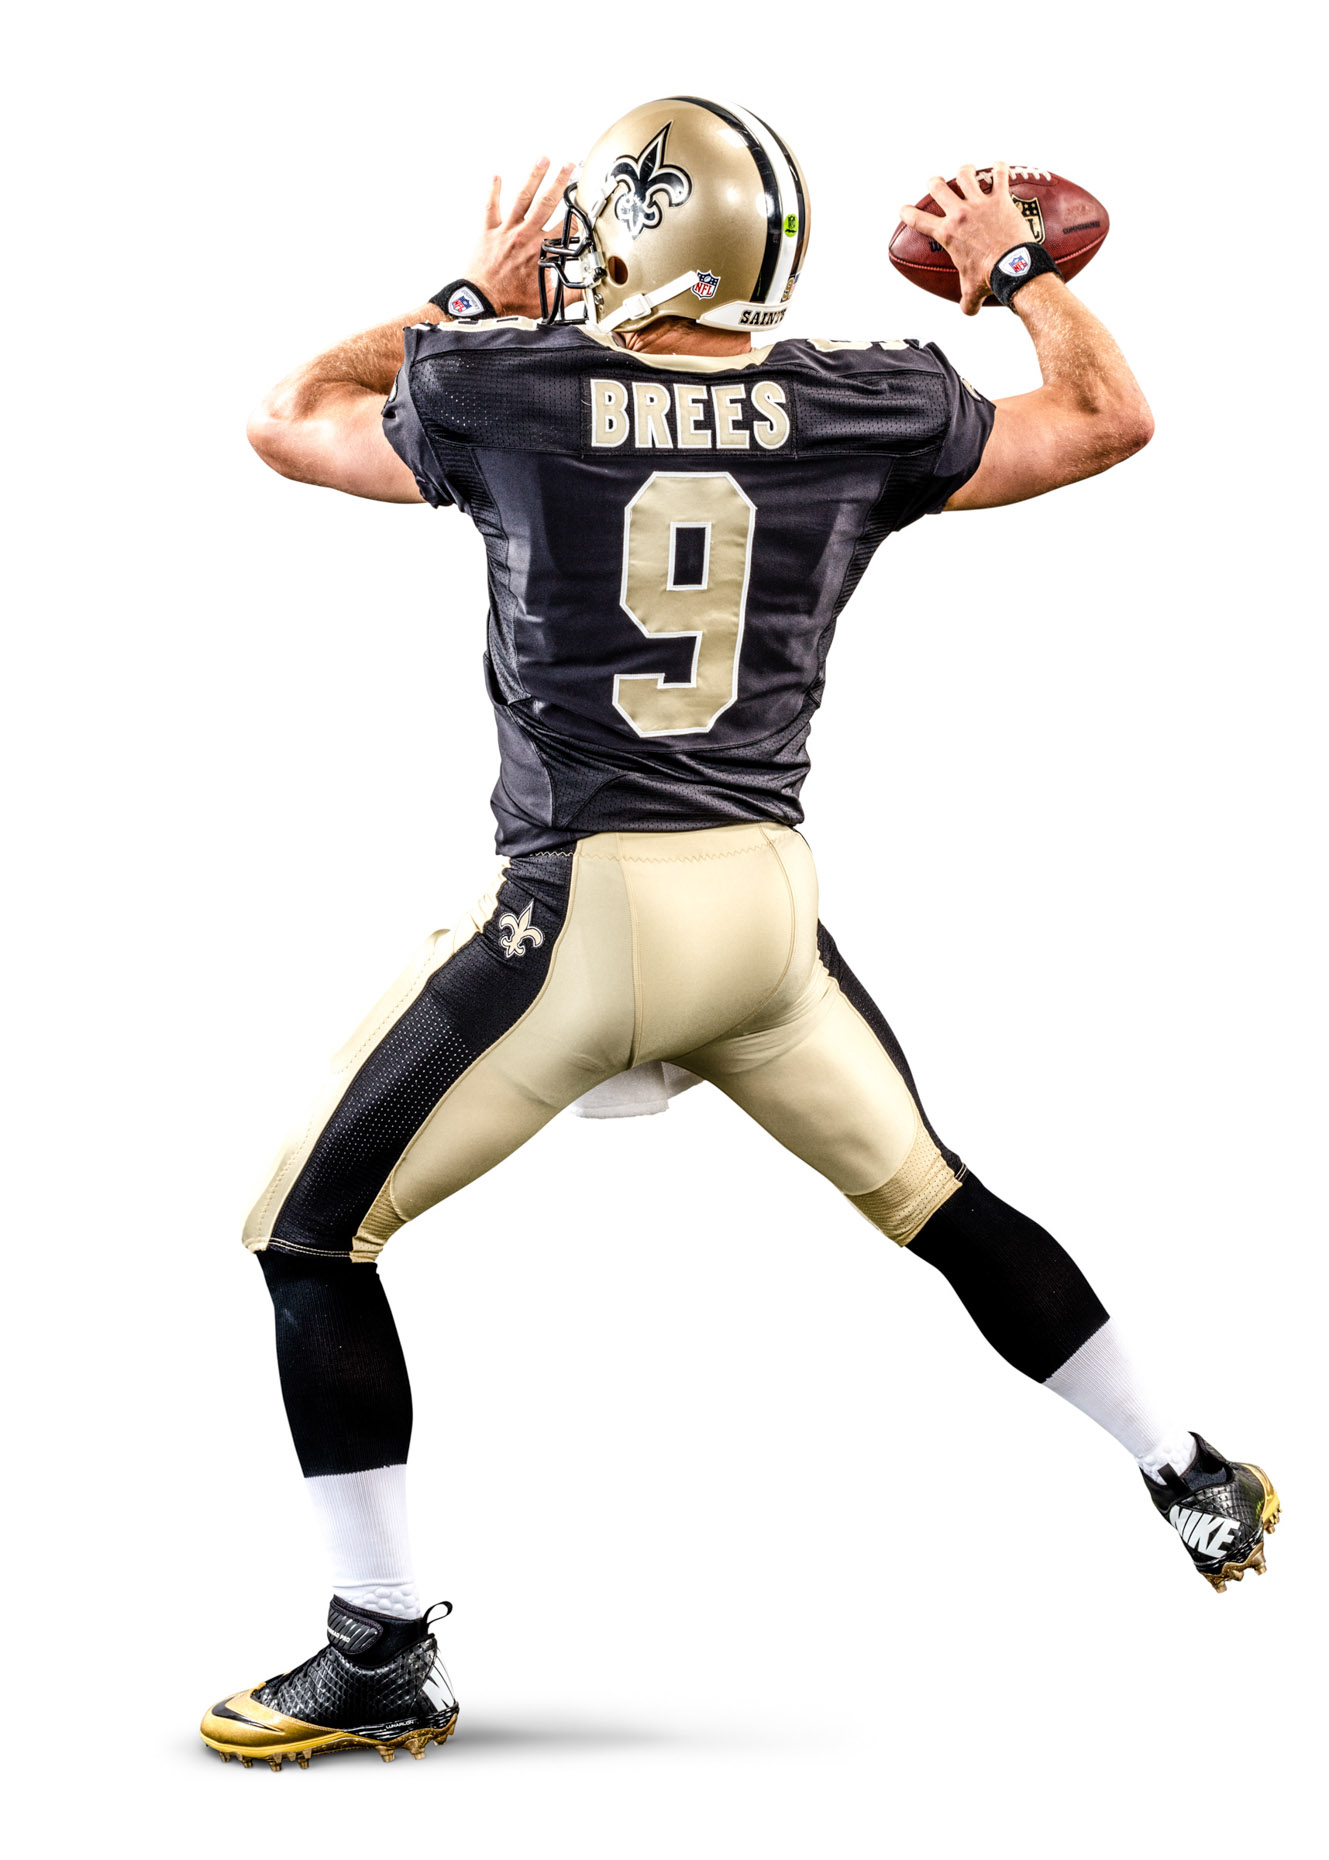 Drew Brees is an American football quarterback for the New Orleans Saints of the National Football League